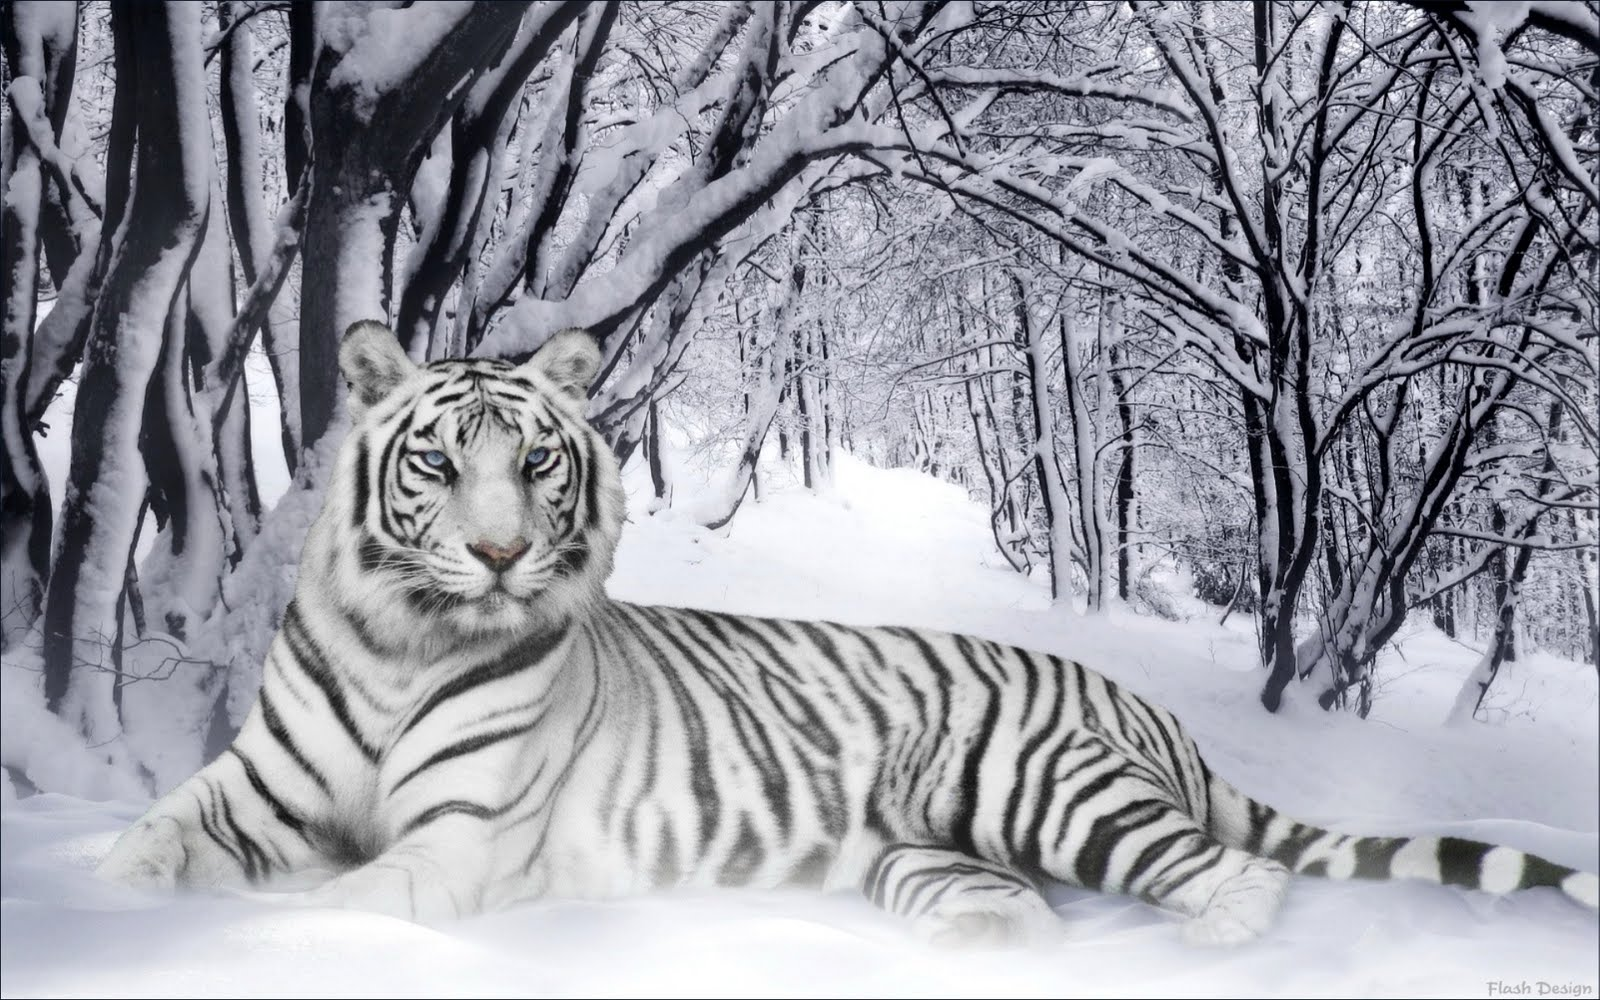 http://4.bp.blogspot.com/-Ck3h9uKgrMM/Th5FIGP7yFI/AAAAAAAAAAo/yJpjs9fqVfc/s1600/897-animals_tiger_white_tiger_wallpaper.jpg